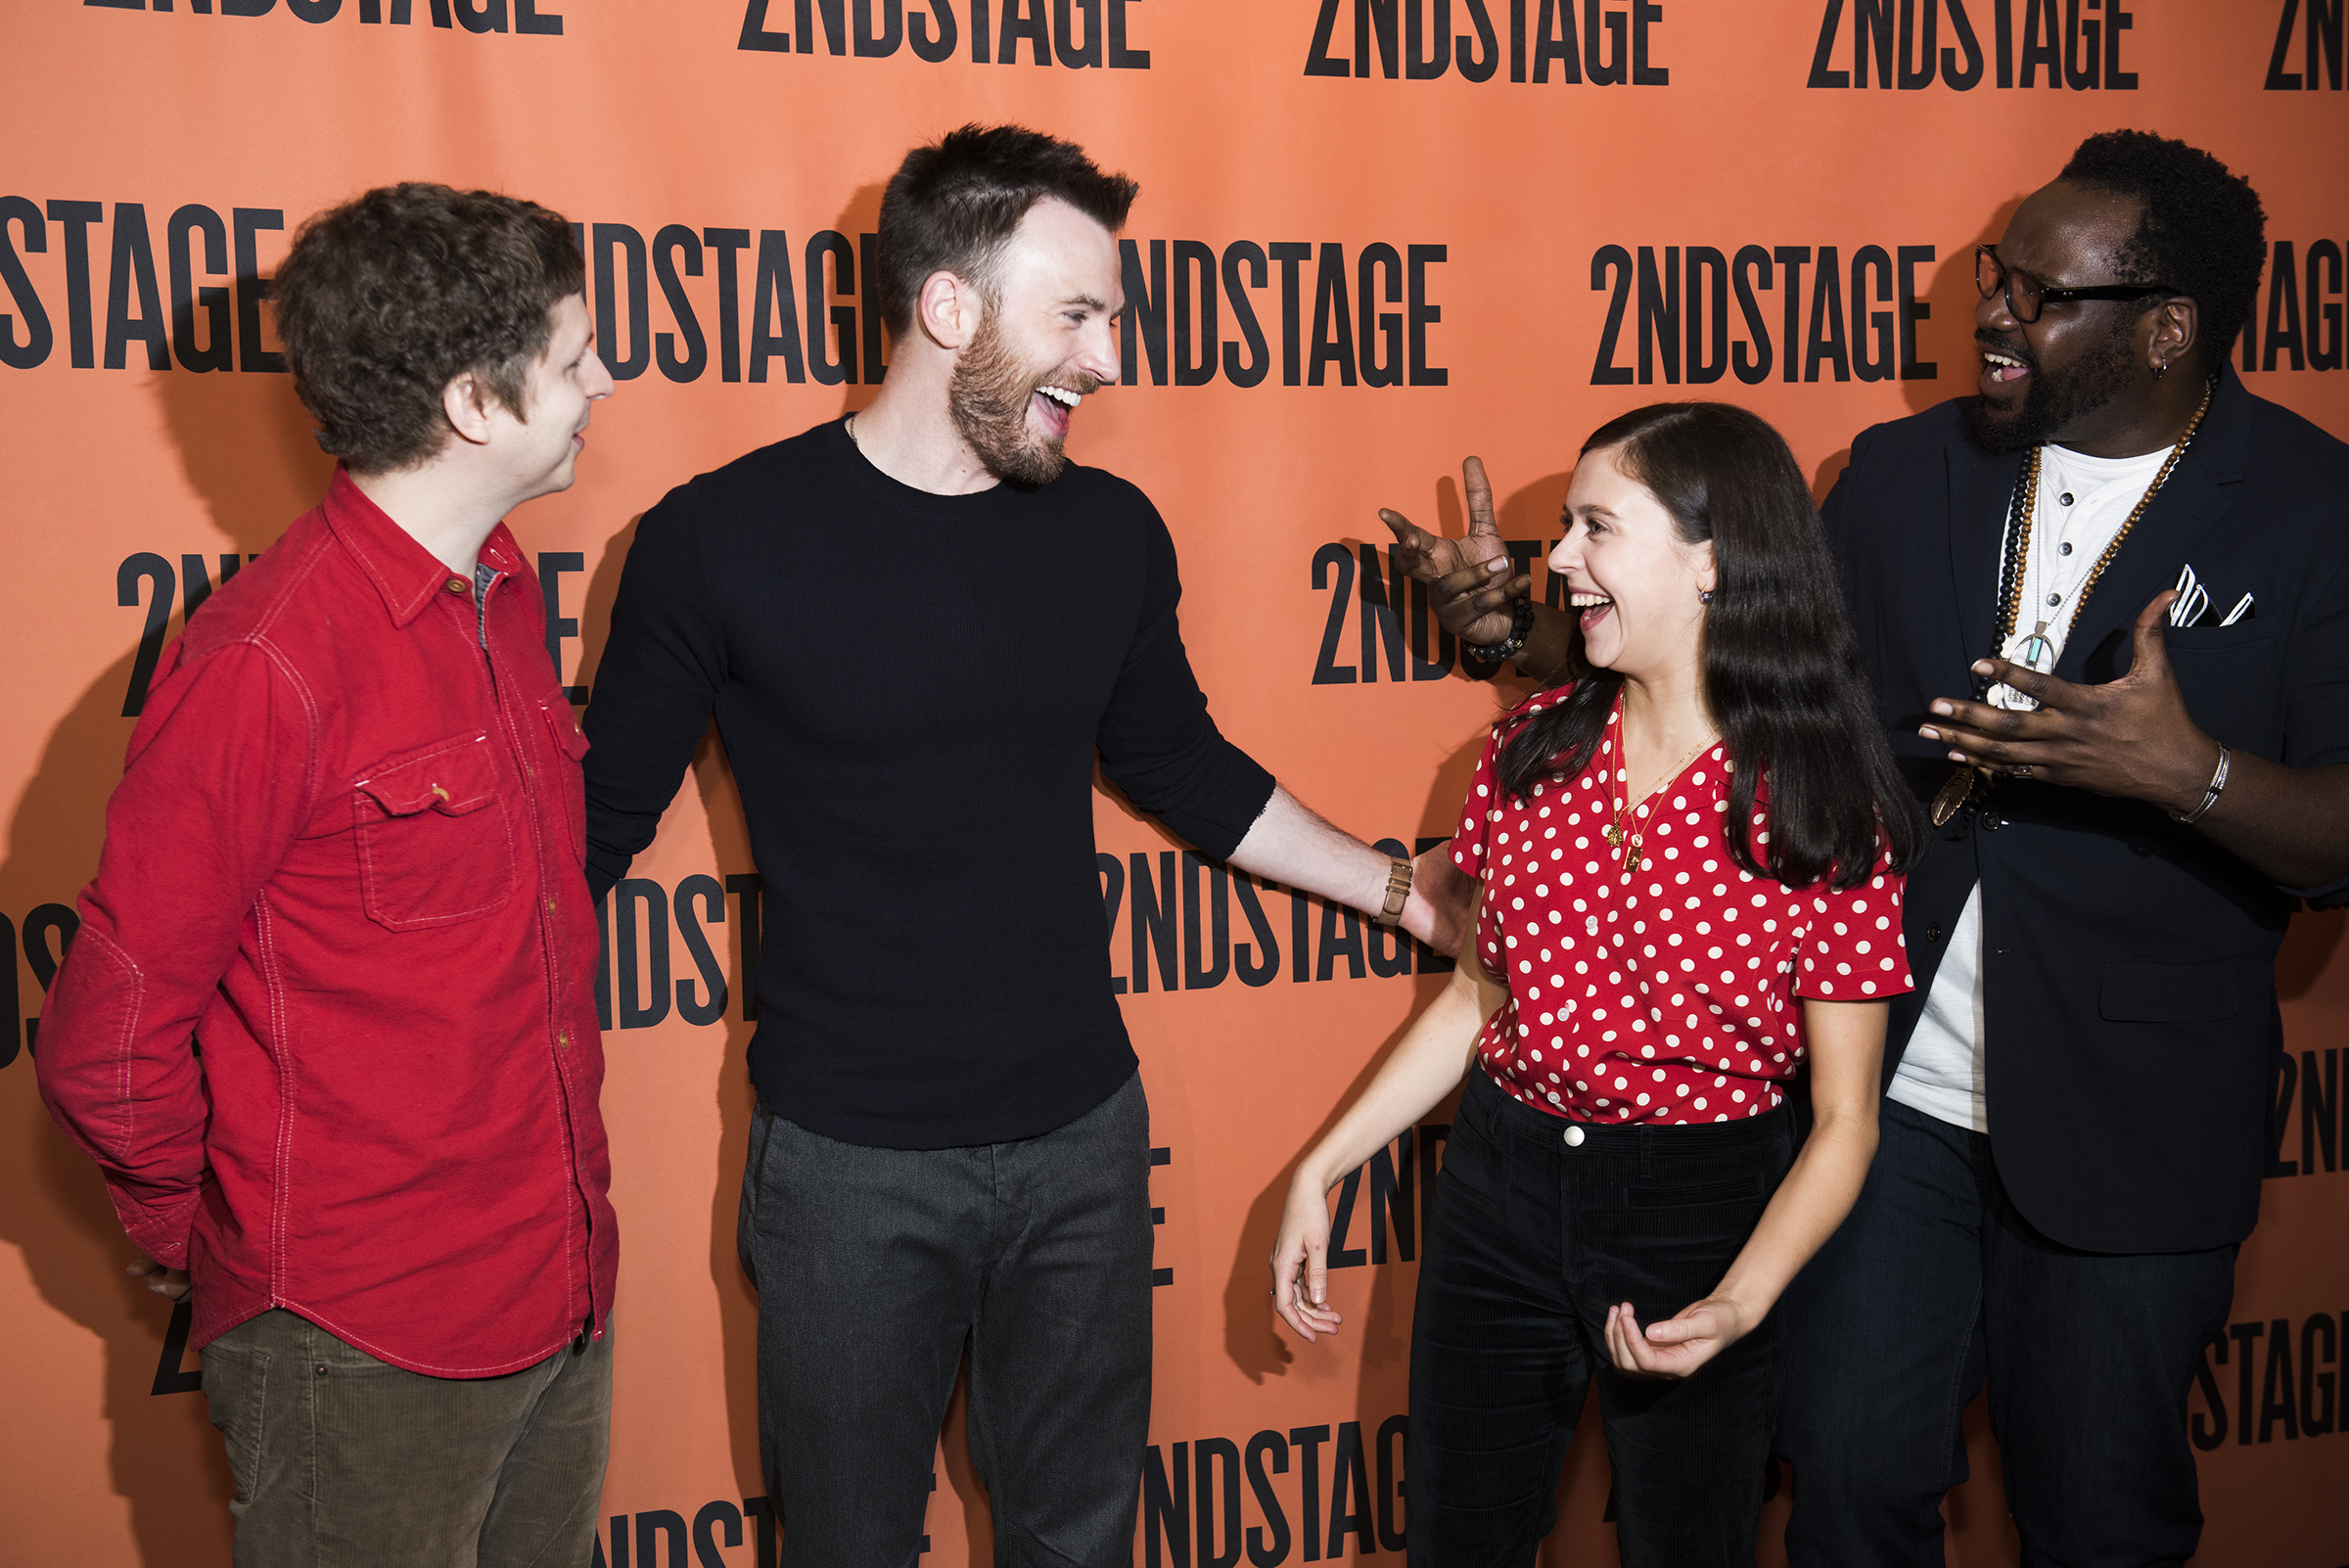 Chris evans and the cast of lobby hero meet the press todaytix chris evans bel powley and brian tyree henry photographed by jenny anderson m4hsunfo